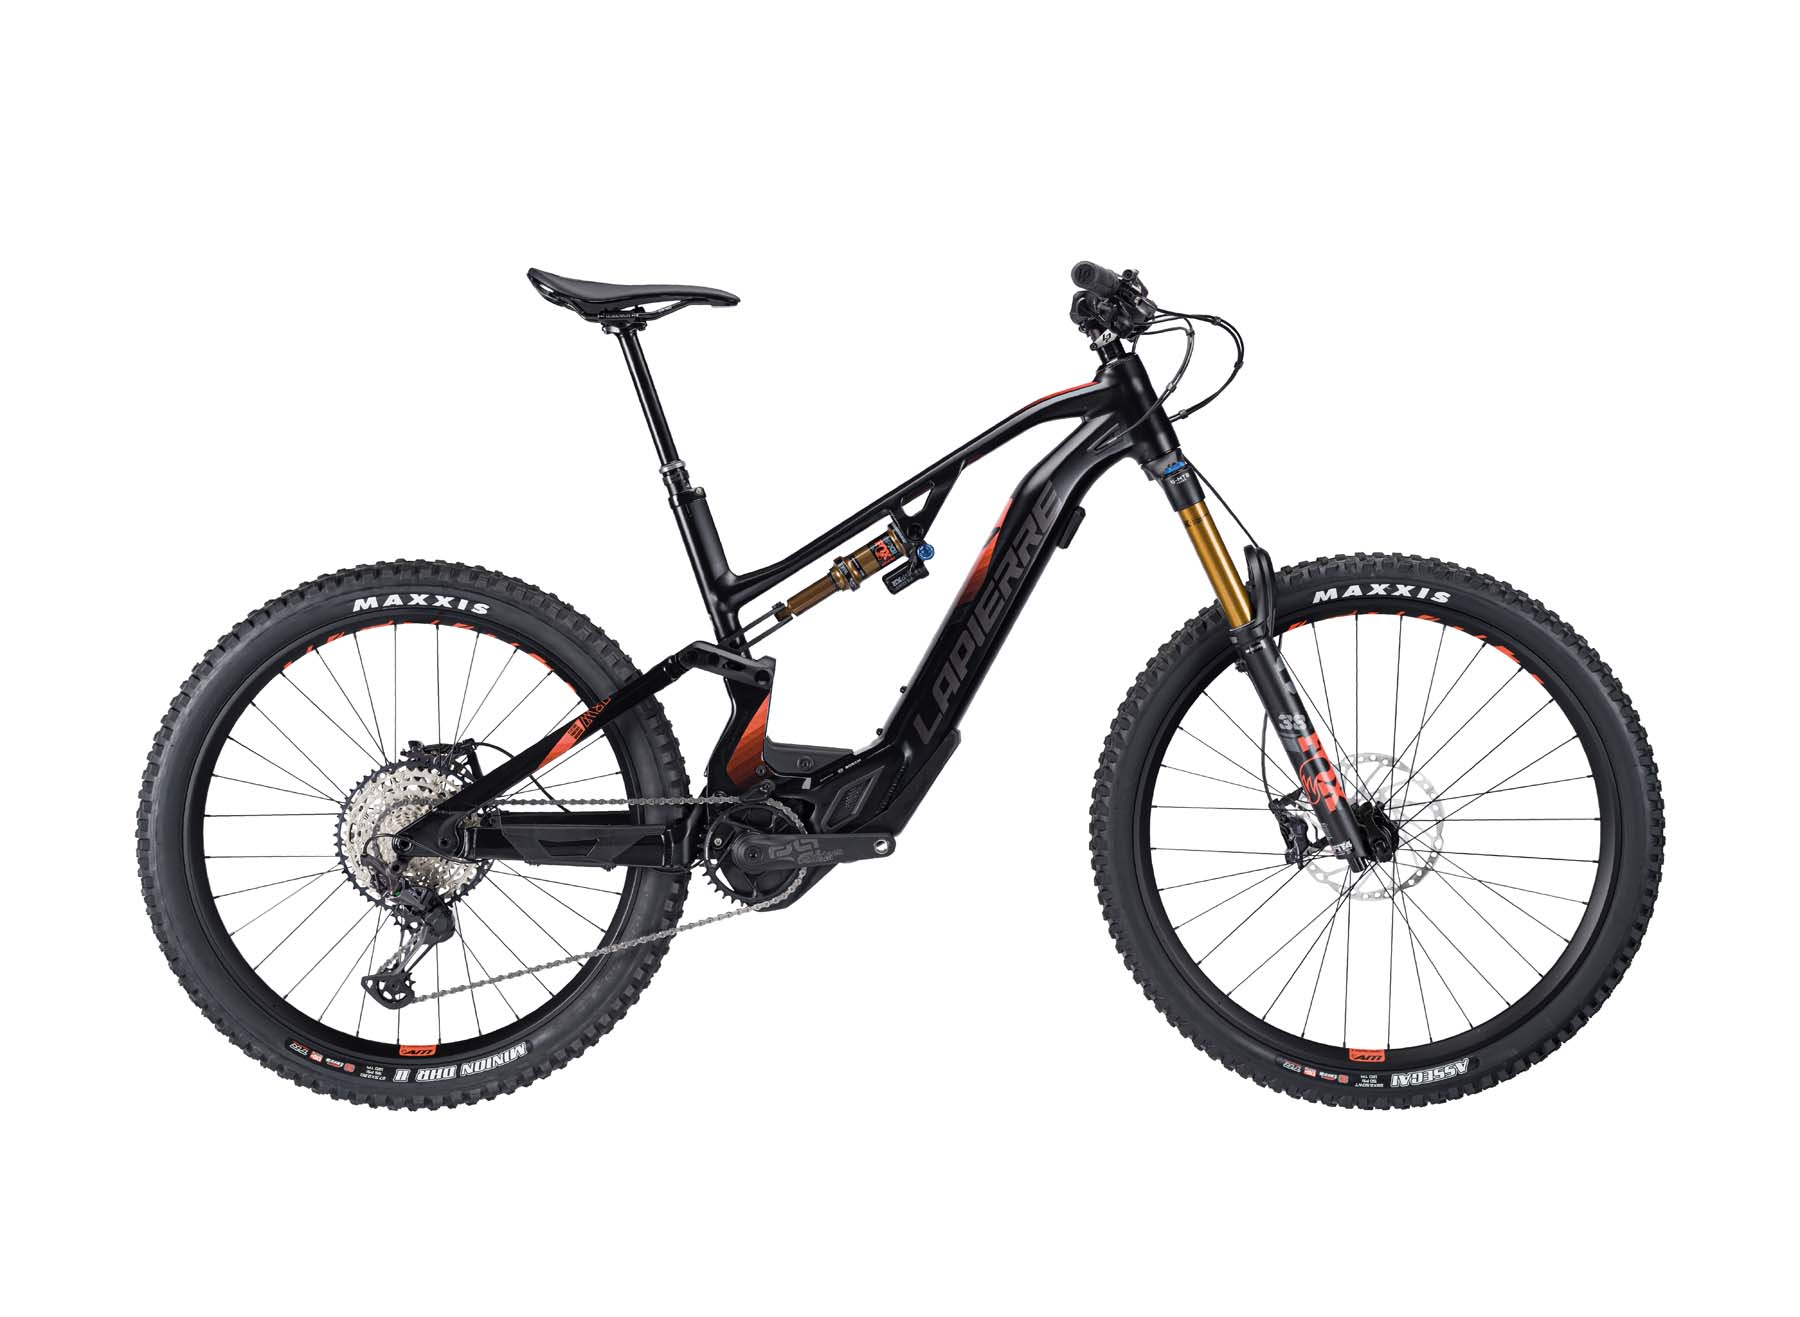 Lapierre Overvolt AM 8.6 2021 MTB Eléctrica All-Mountain 1